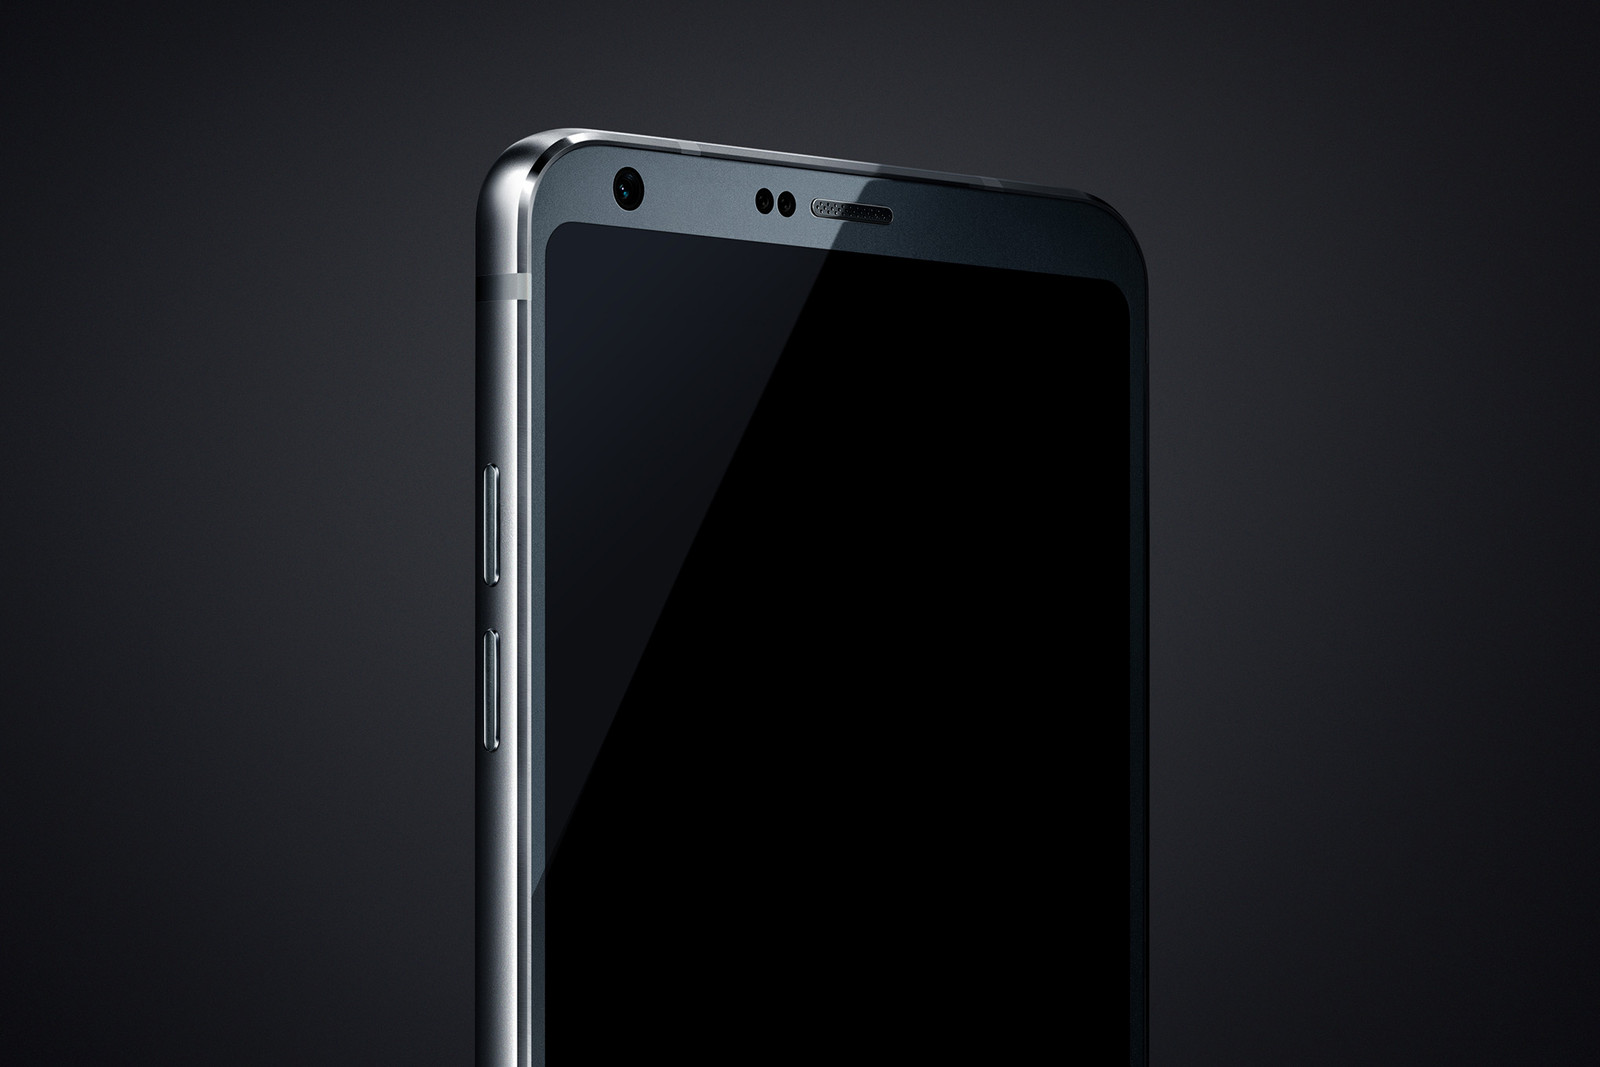 LG G6 could come in a unique color model to take on Jet Black iPhone, as this leaked image suggests